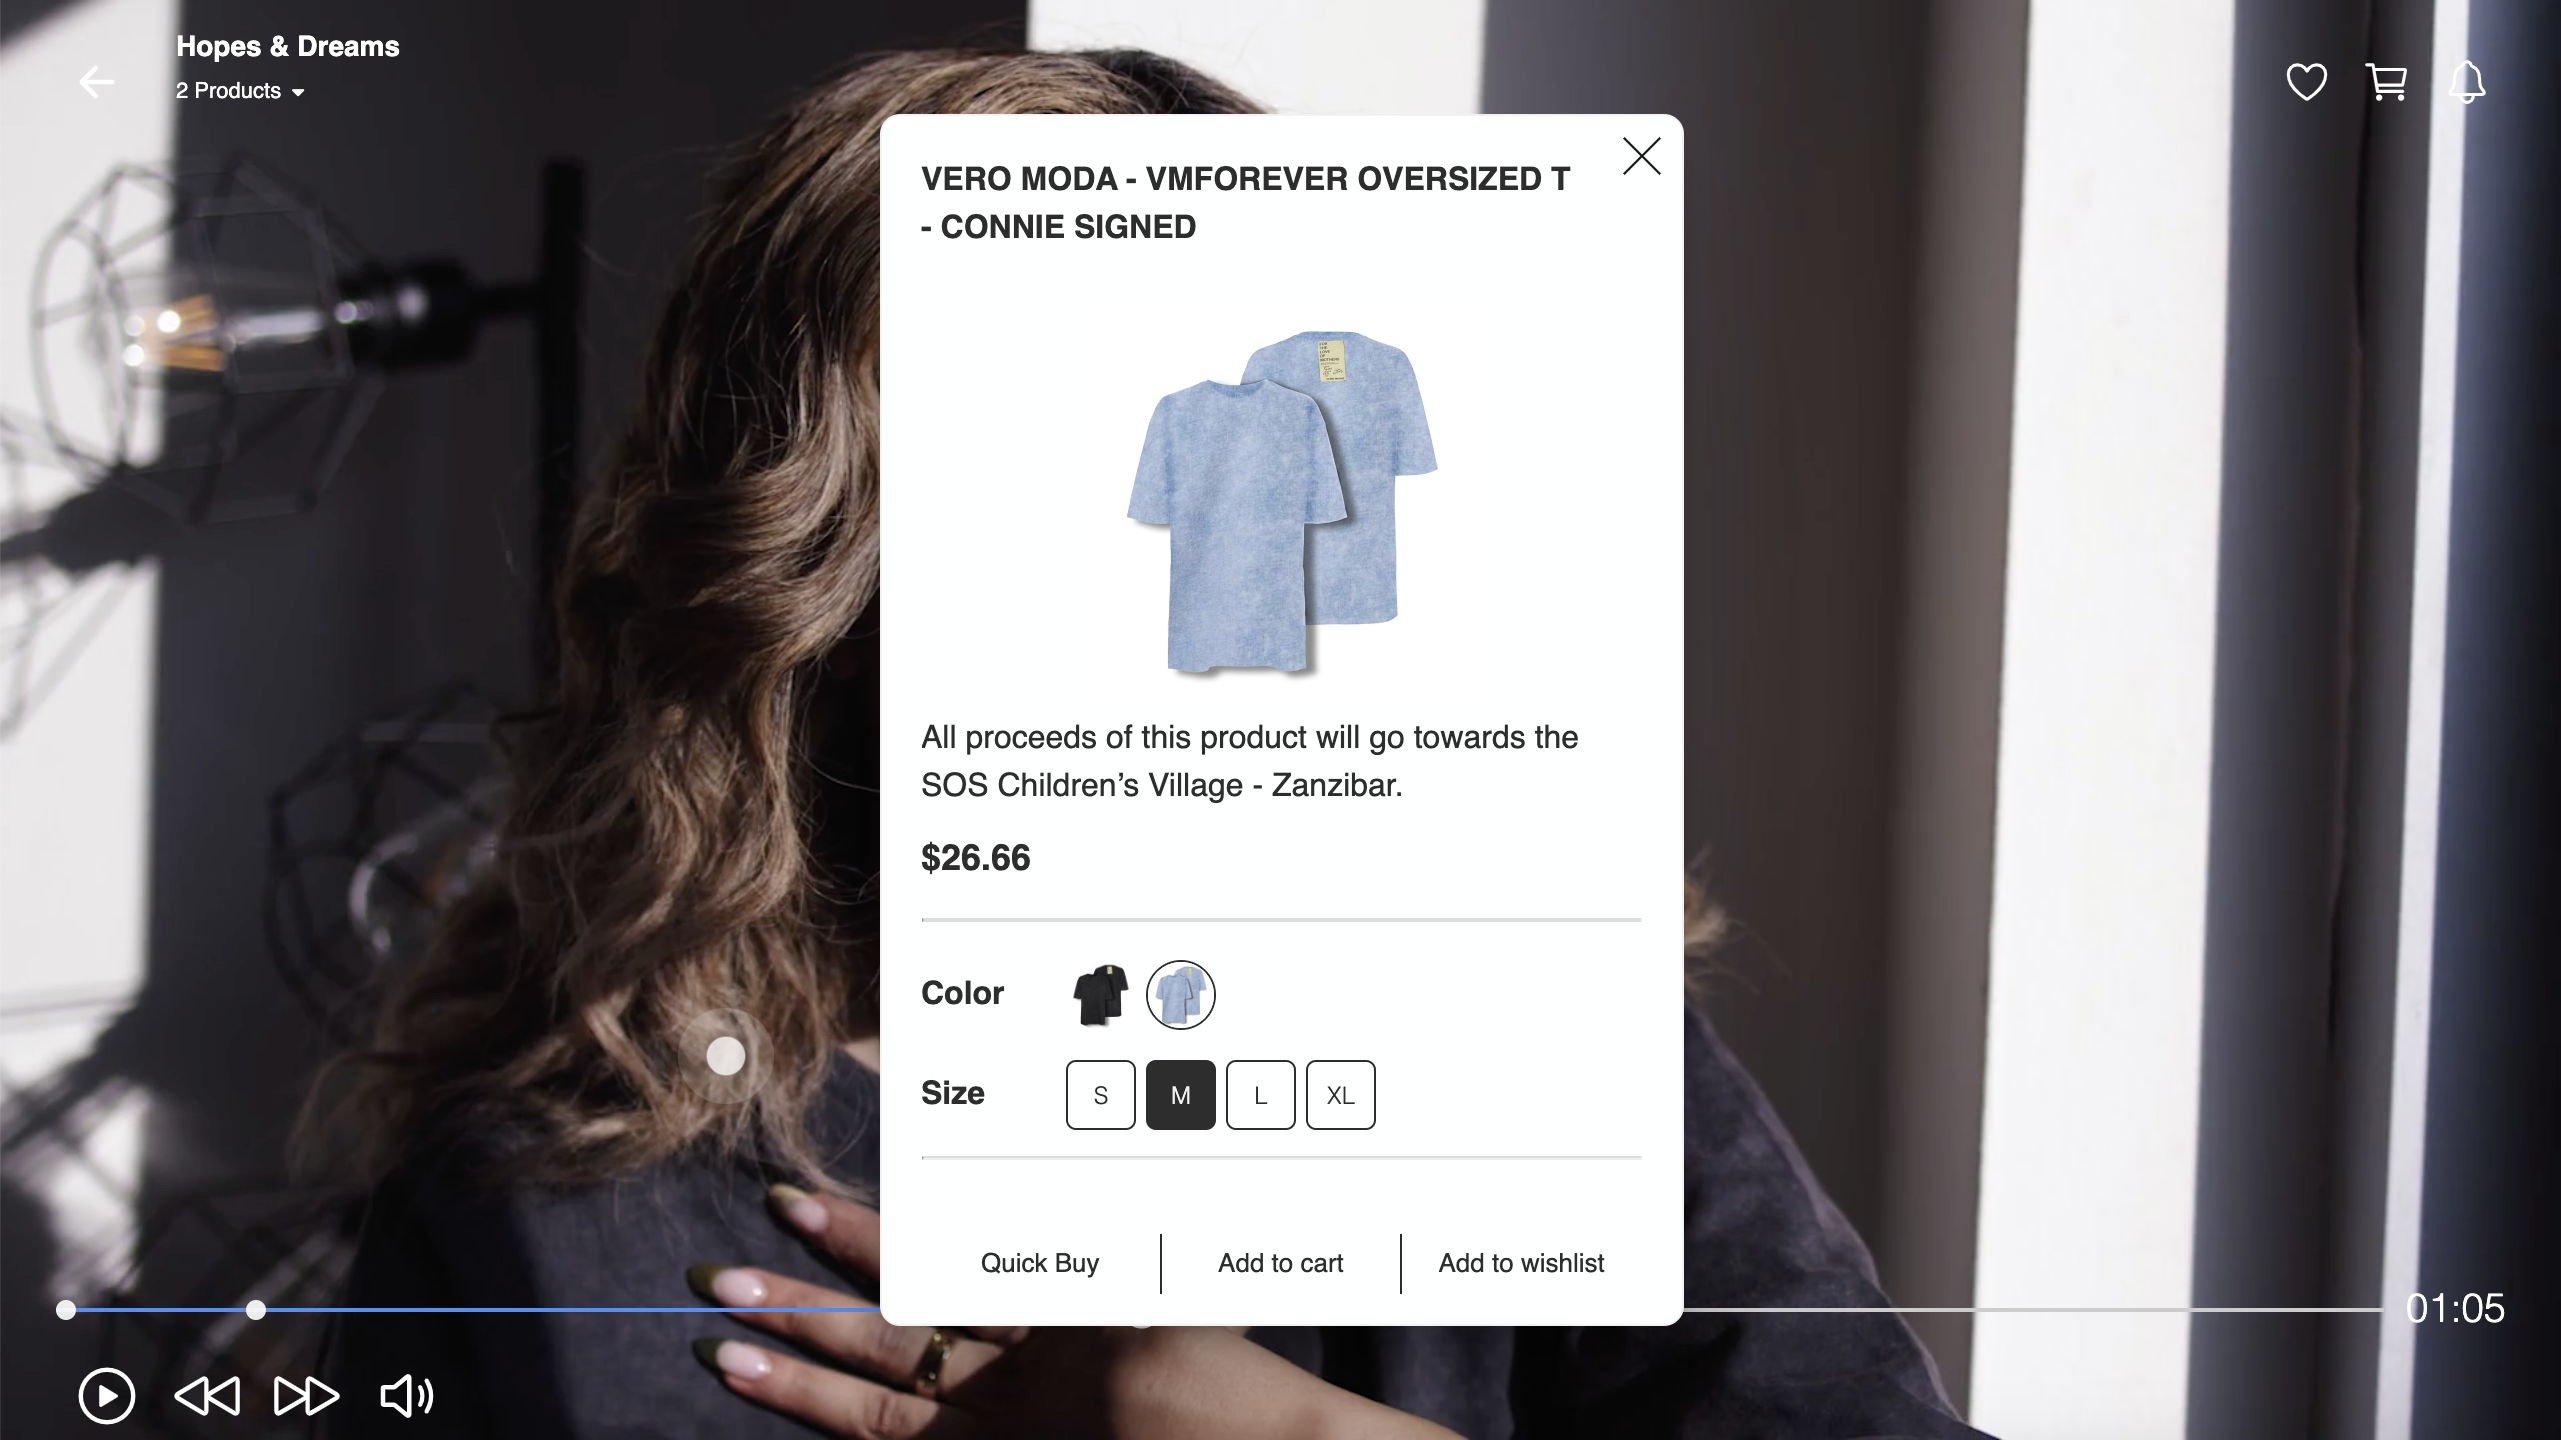 Streetwear trade show brand Agenda Show is partnering with DroppTV to bring shoppable livestreams to its Las Vegas and Atlantic City events.